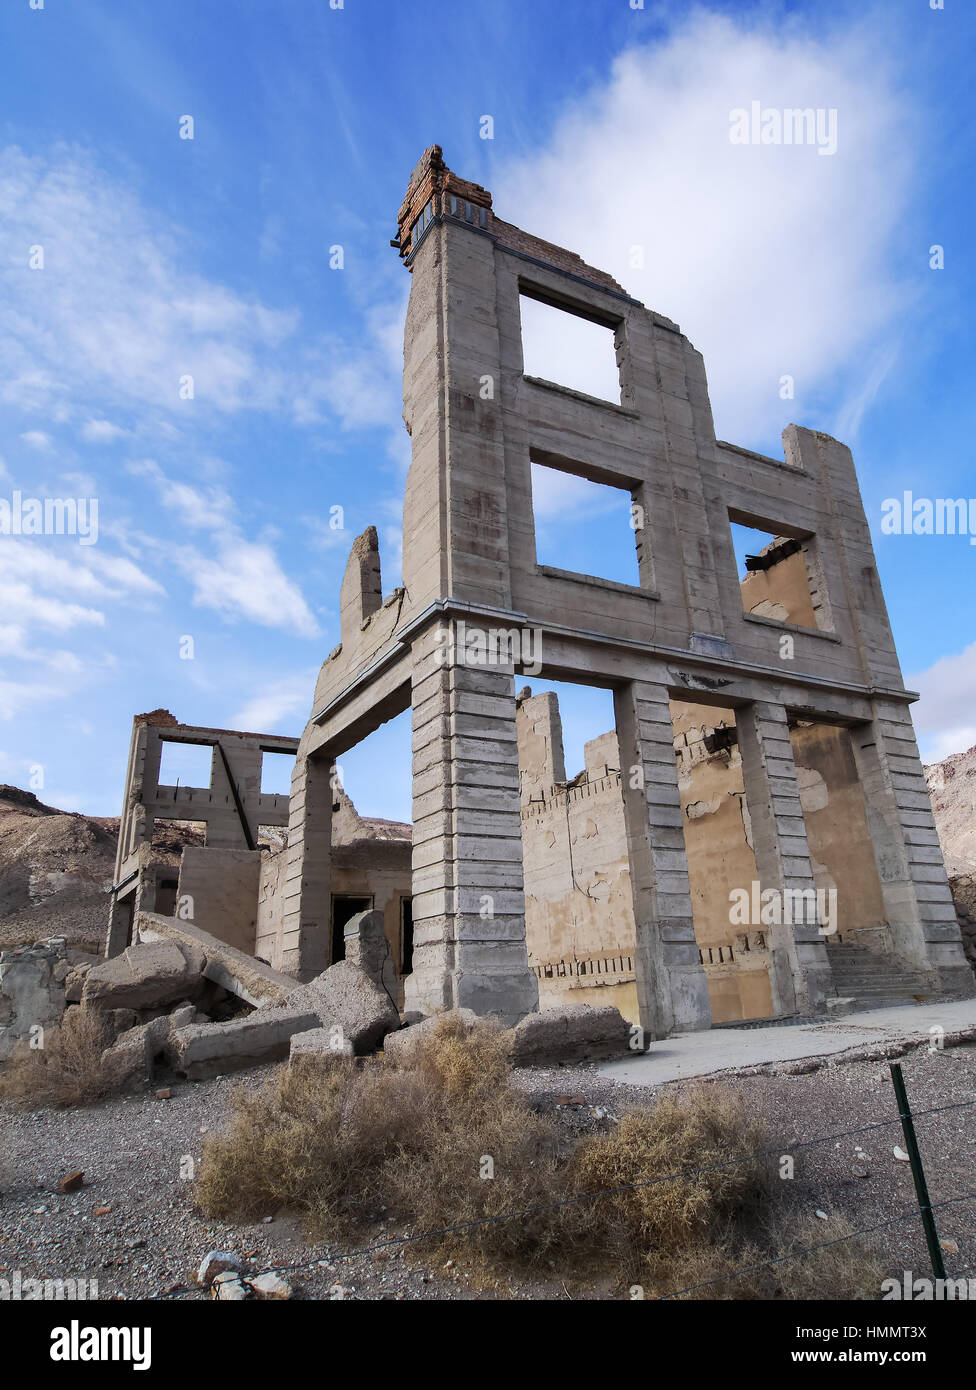 Abandoned bank building at Rhyolite Ghost town in Nevada, United States. - Stock Image